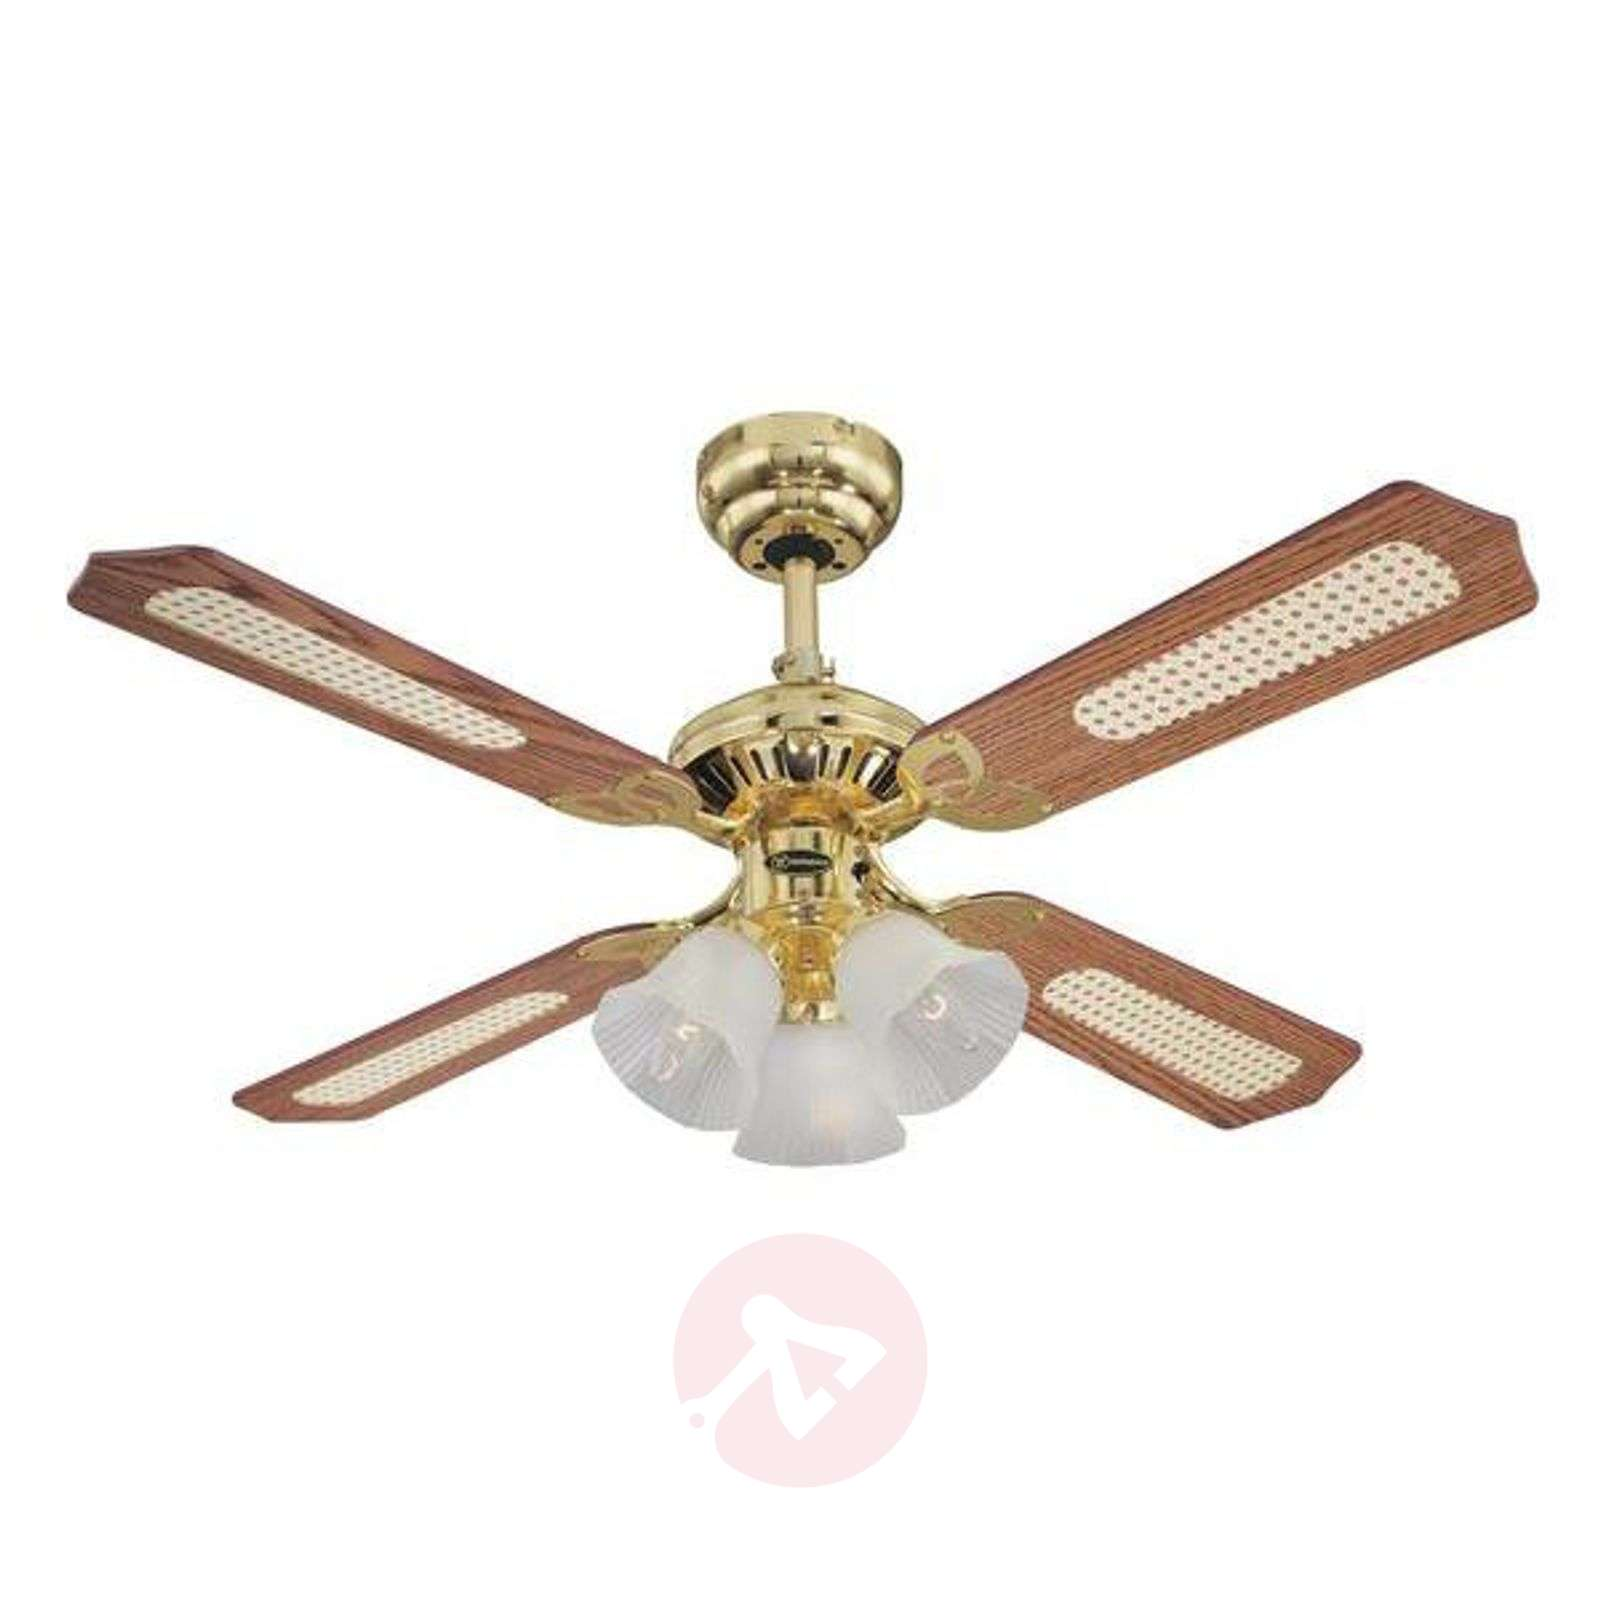 Stylish Princess Trio ceiling fan in wood-9602168-01